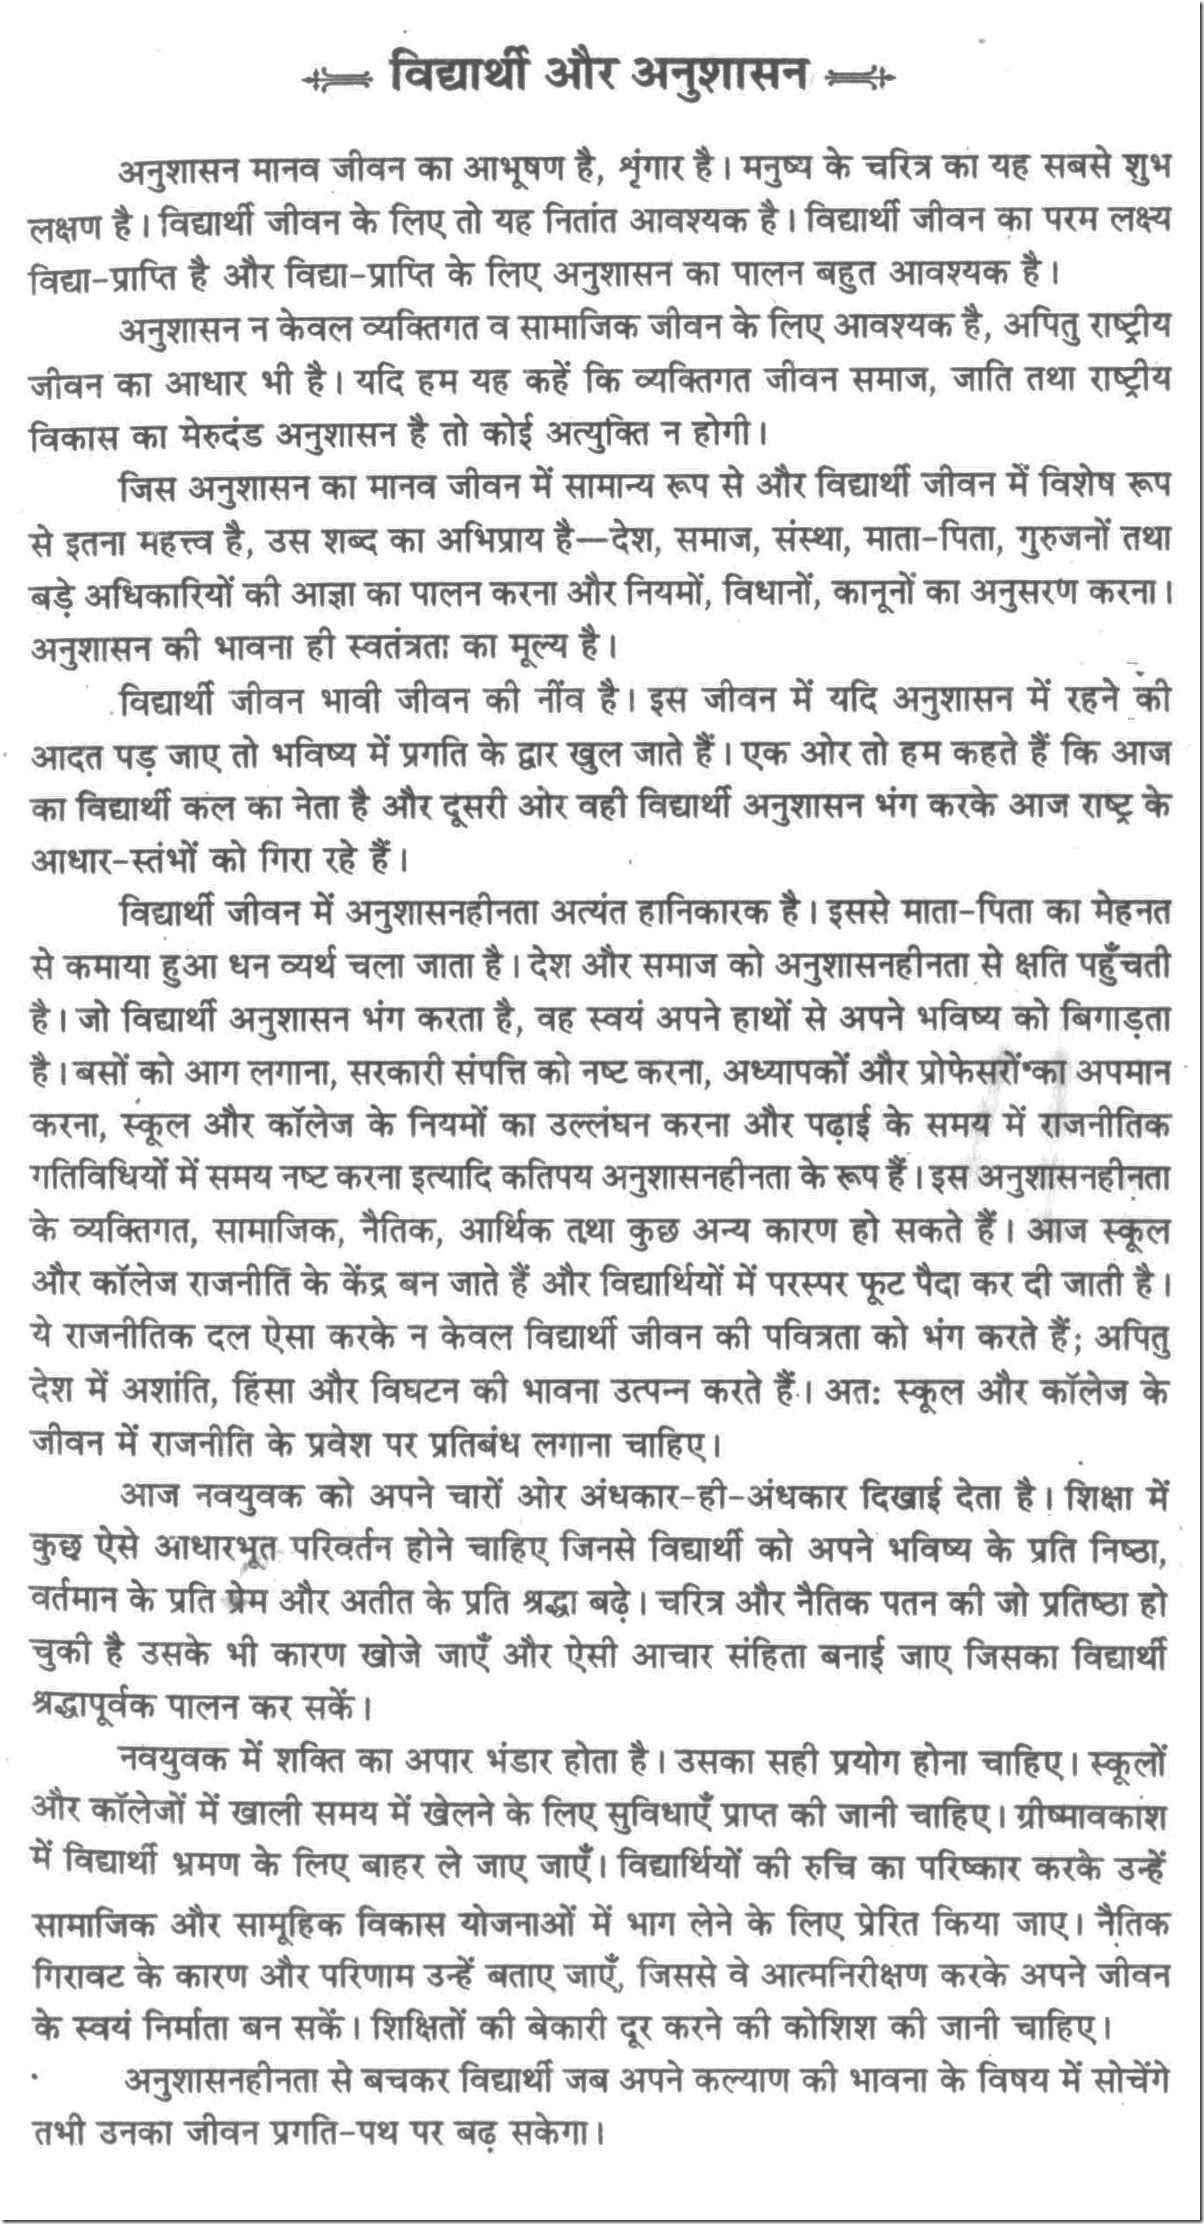 012 Essay Example On Punctuality And Discipline Write Short For School Students In At Home Hindi Easy Class Urdu Life English Our Stunning Full